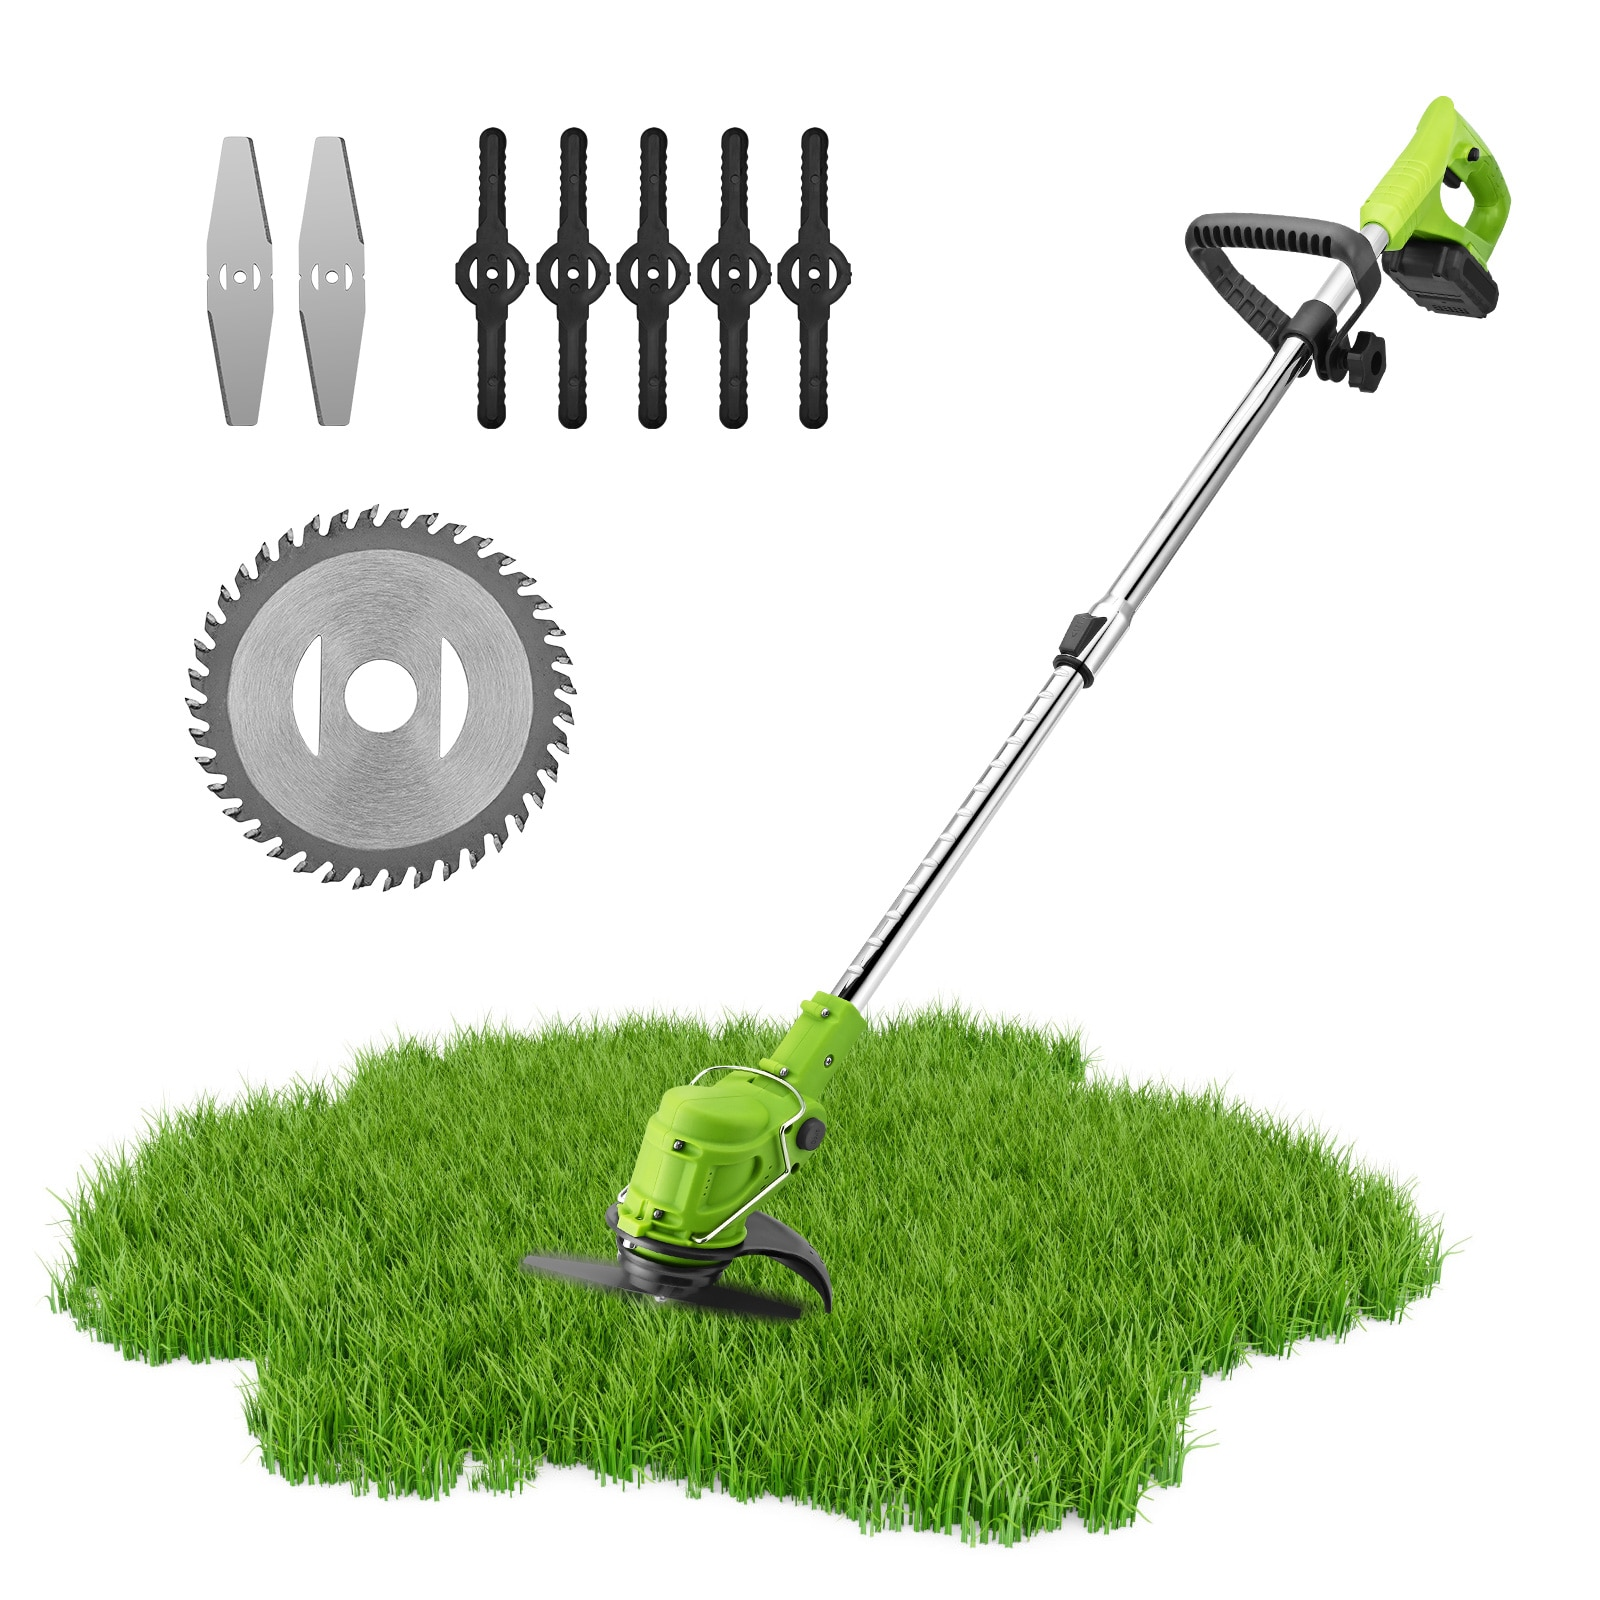 Cordless Grass Trimmer Brush Cutter Wireless Grass Trimmer Lawn Mower Garden Tools For Weed-Wacking With 21V Lithium-ion Battery